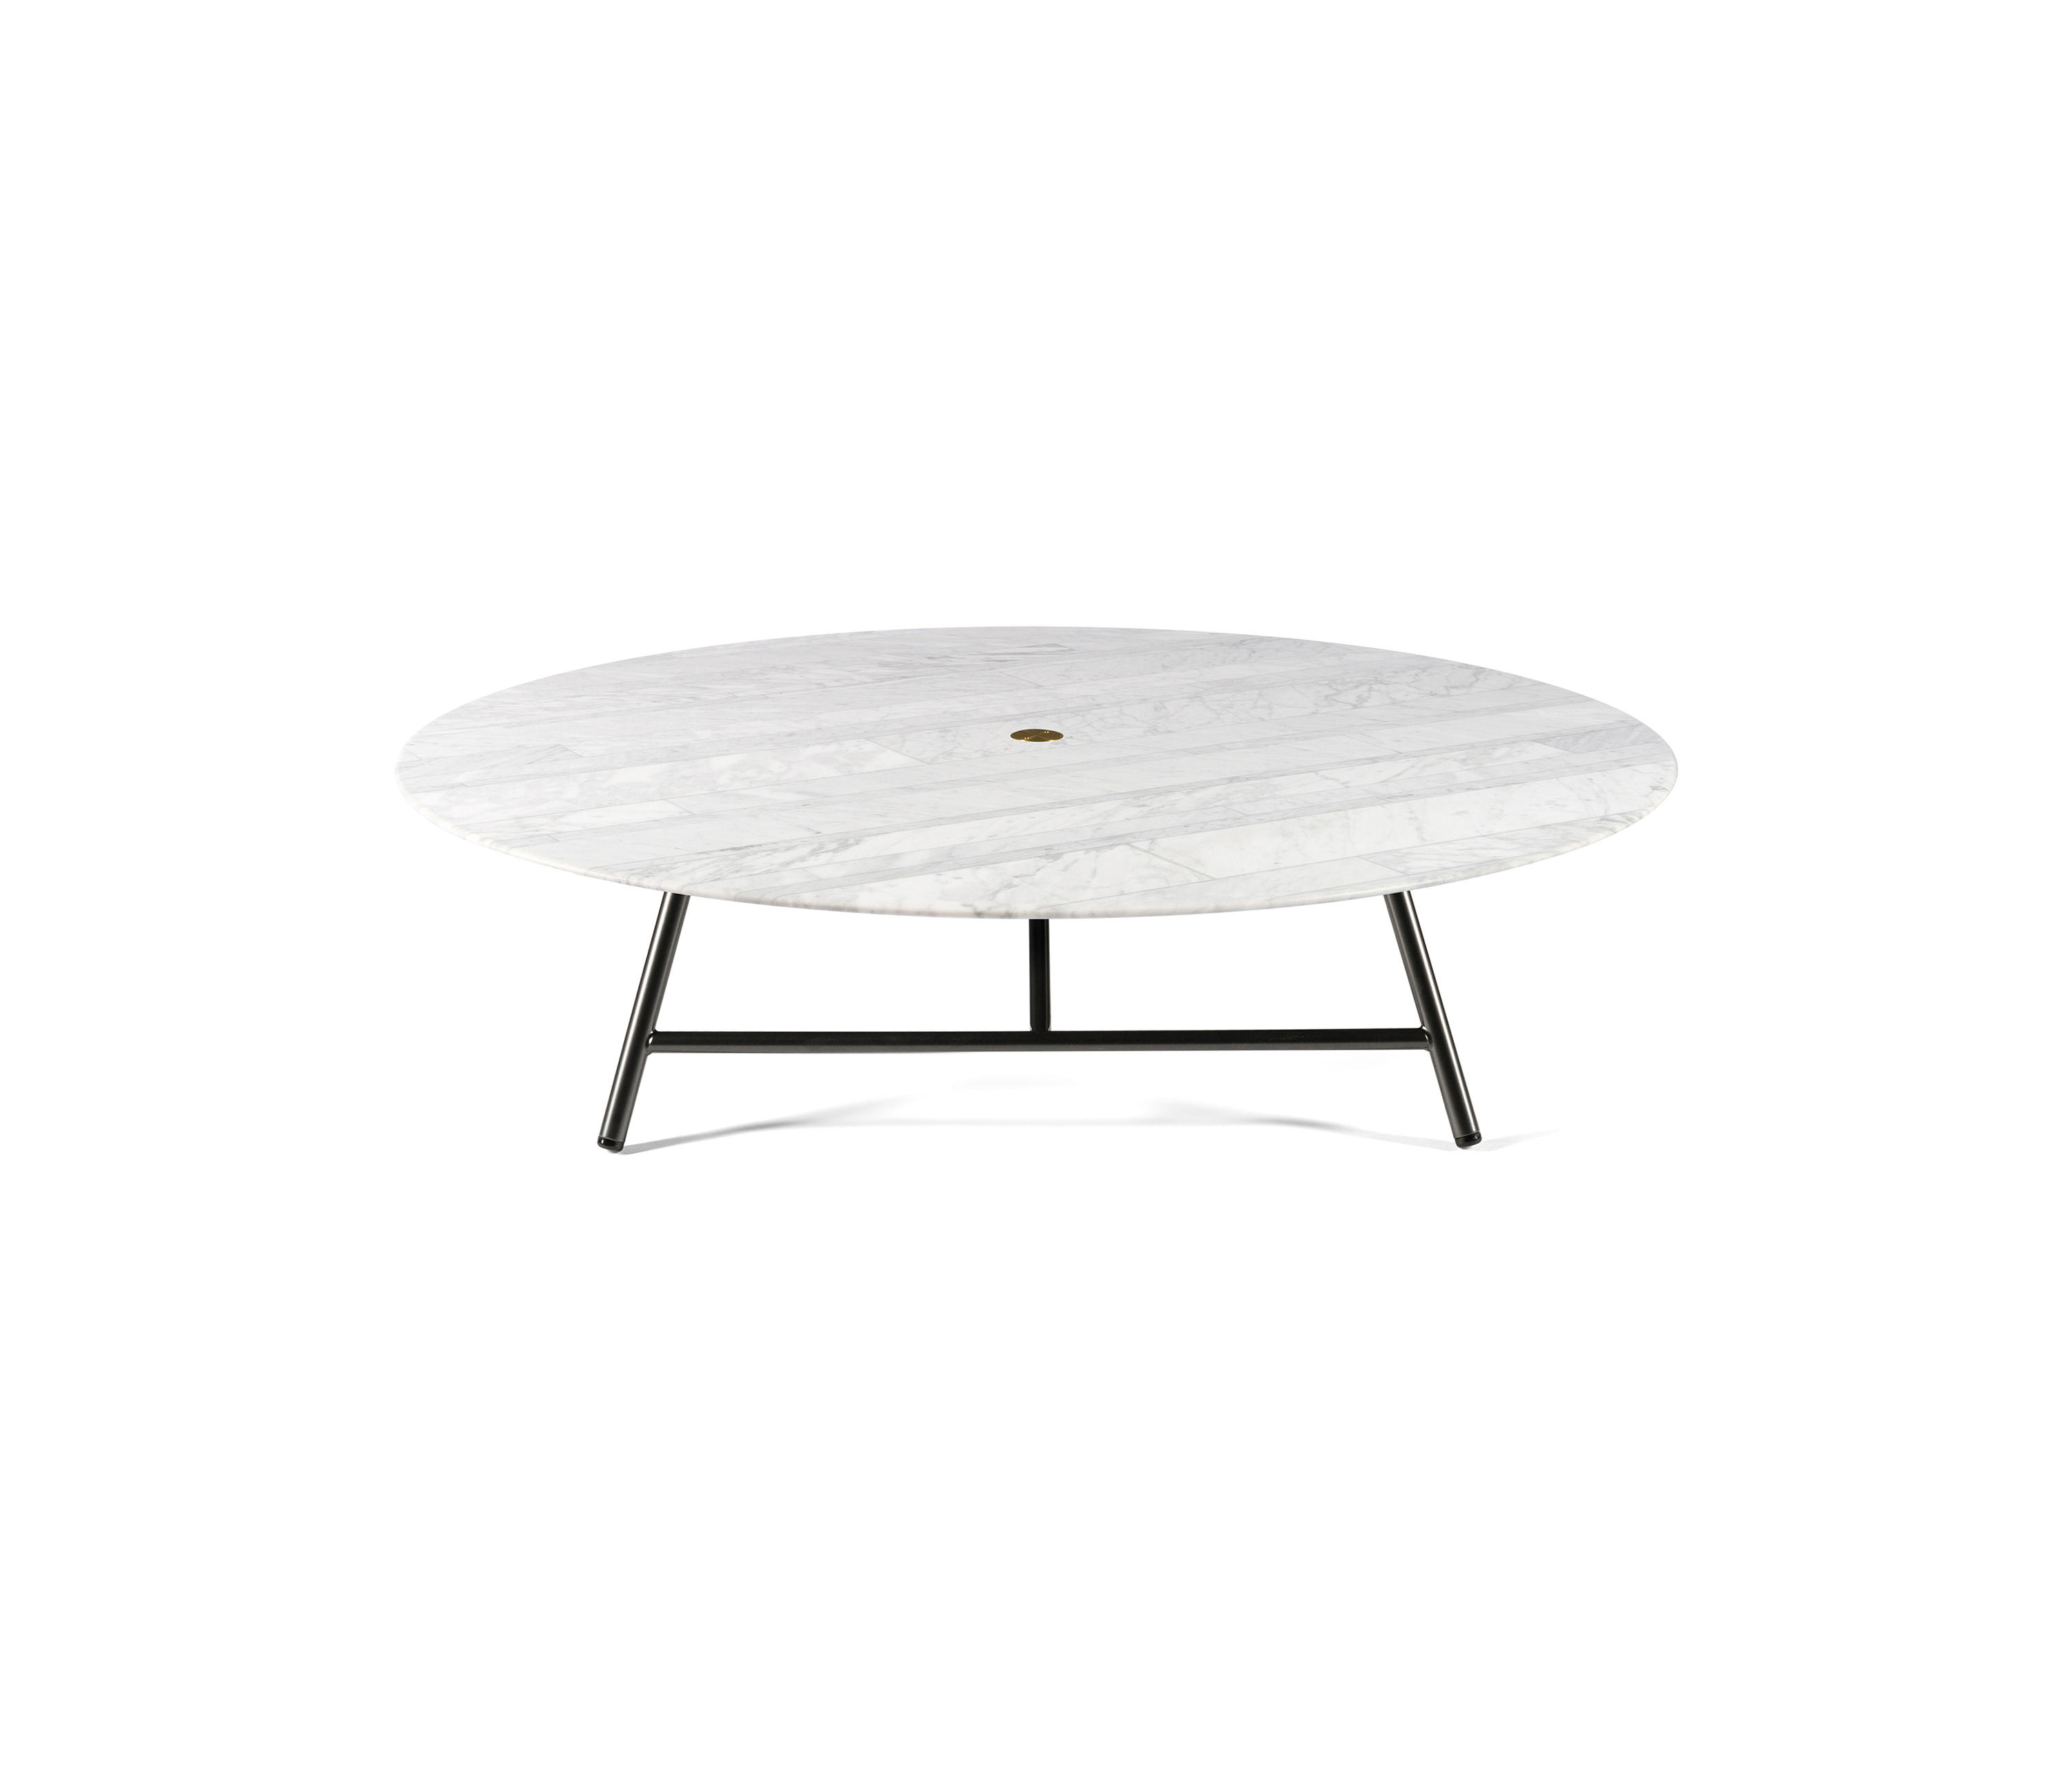 COFFEE TABLES WITH TOP IN NATURAL STONE High quality designer